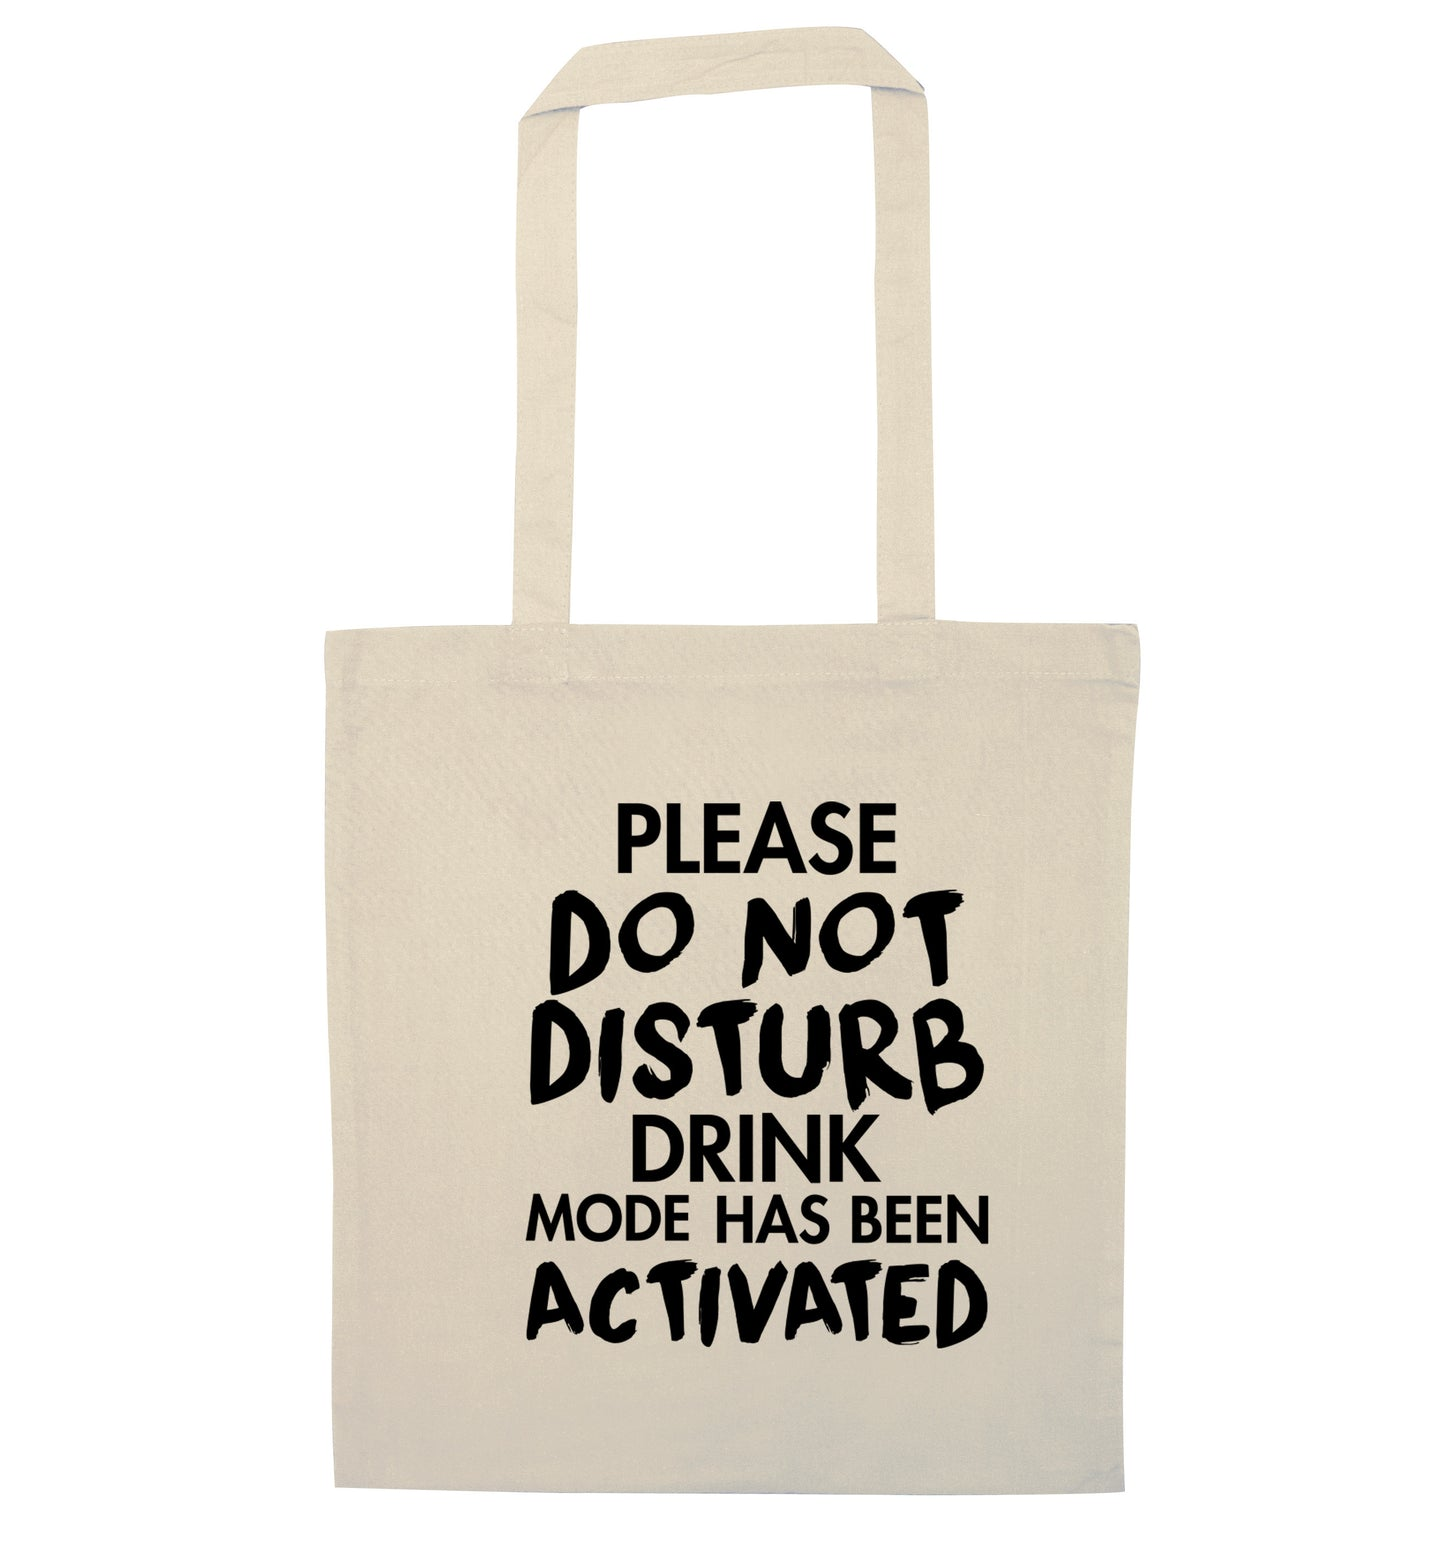 Please do not disturb drink mode has been activated natural tote bag